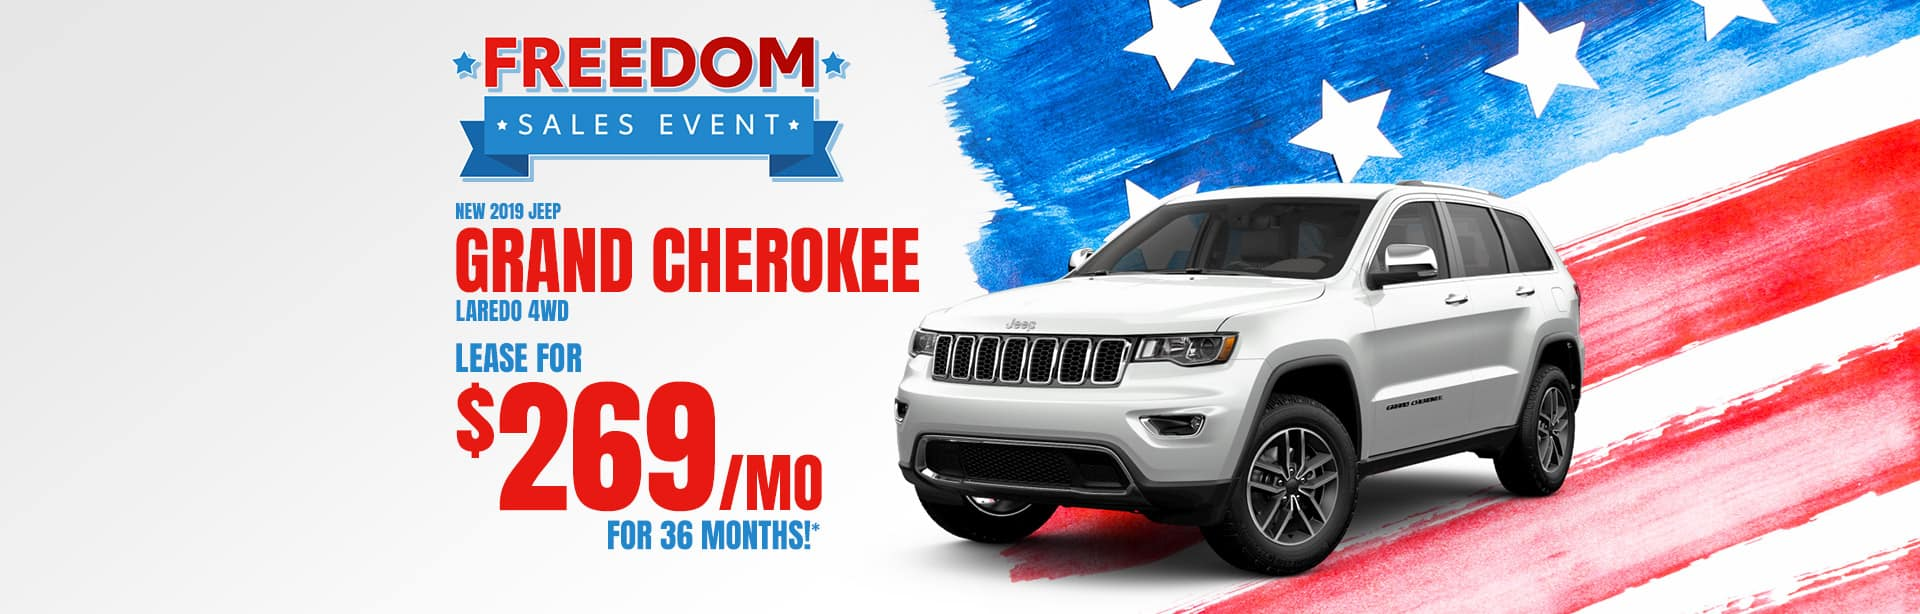 Best Deal on a Jeep Grand Cherokee near Ft. Wayne, Indiana.